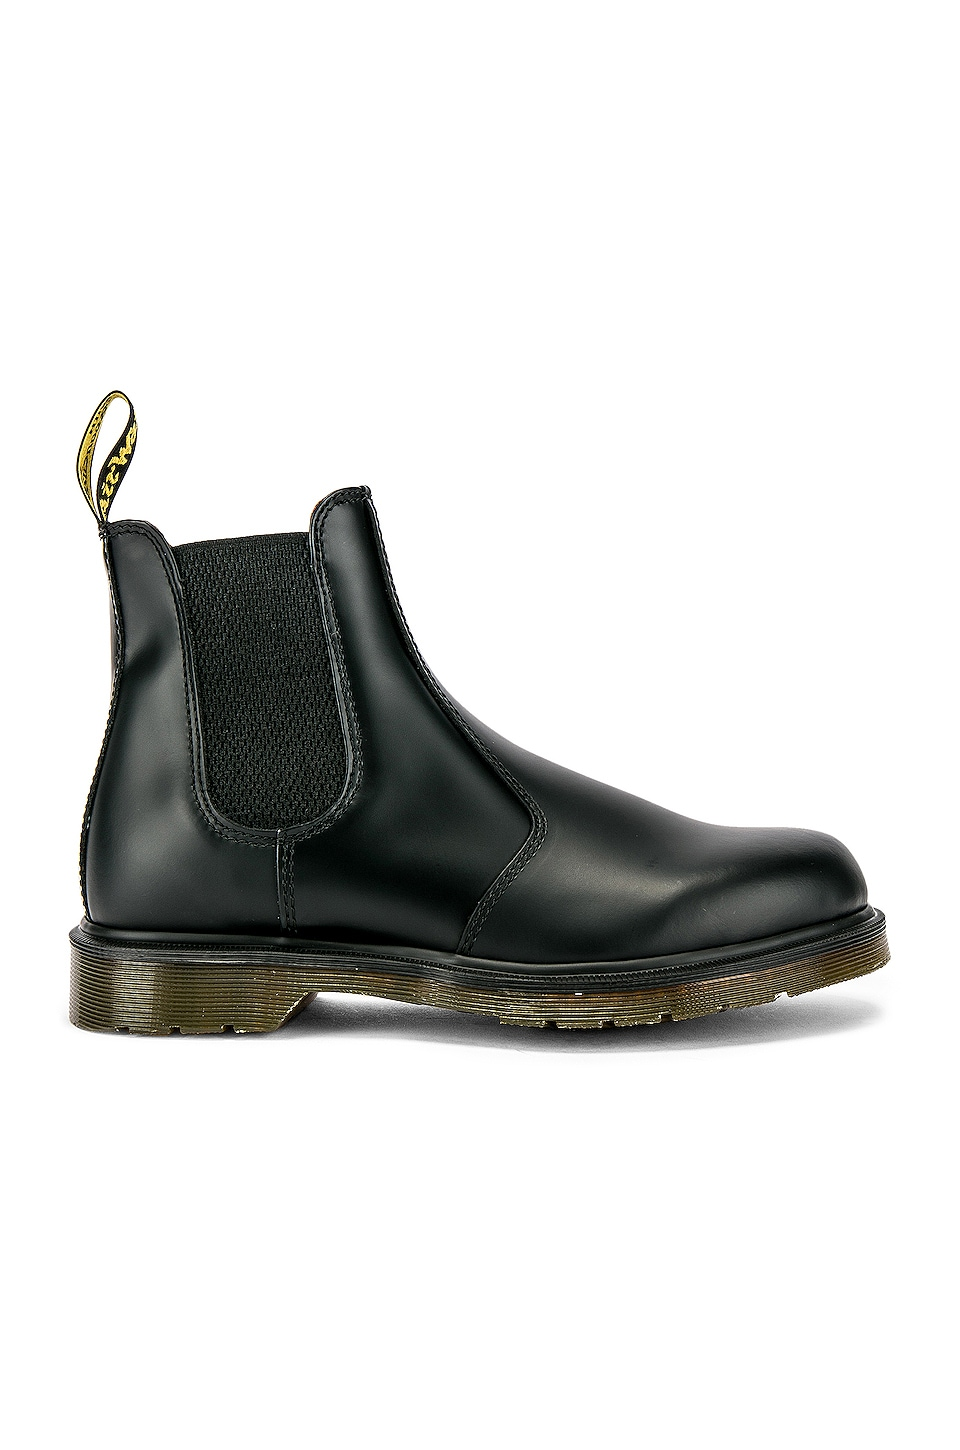 Dr. Martens 2976 Smooth Boot in Black